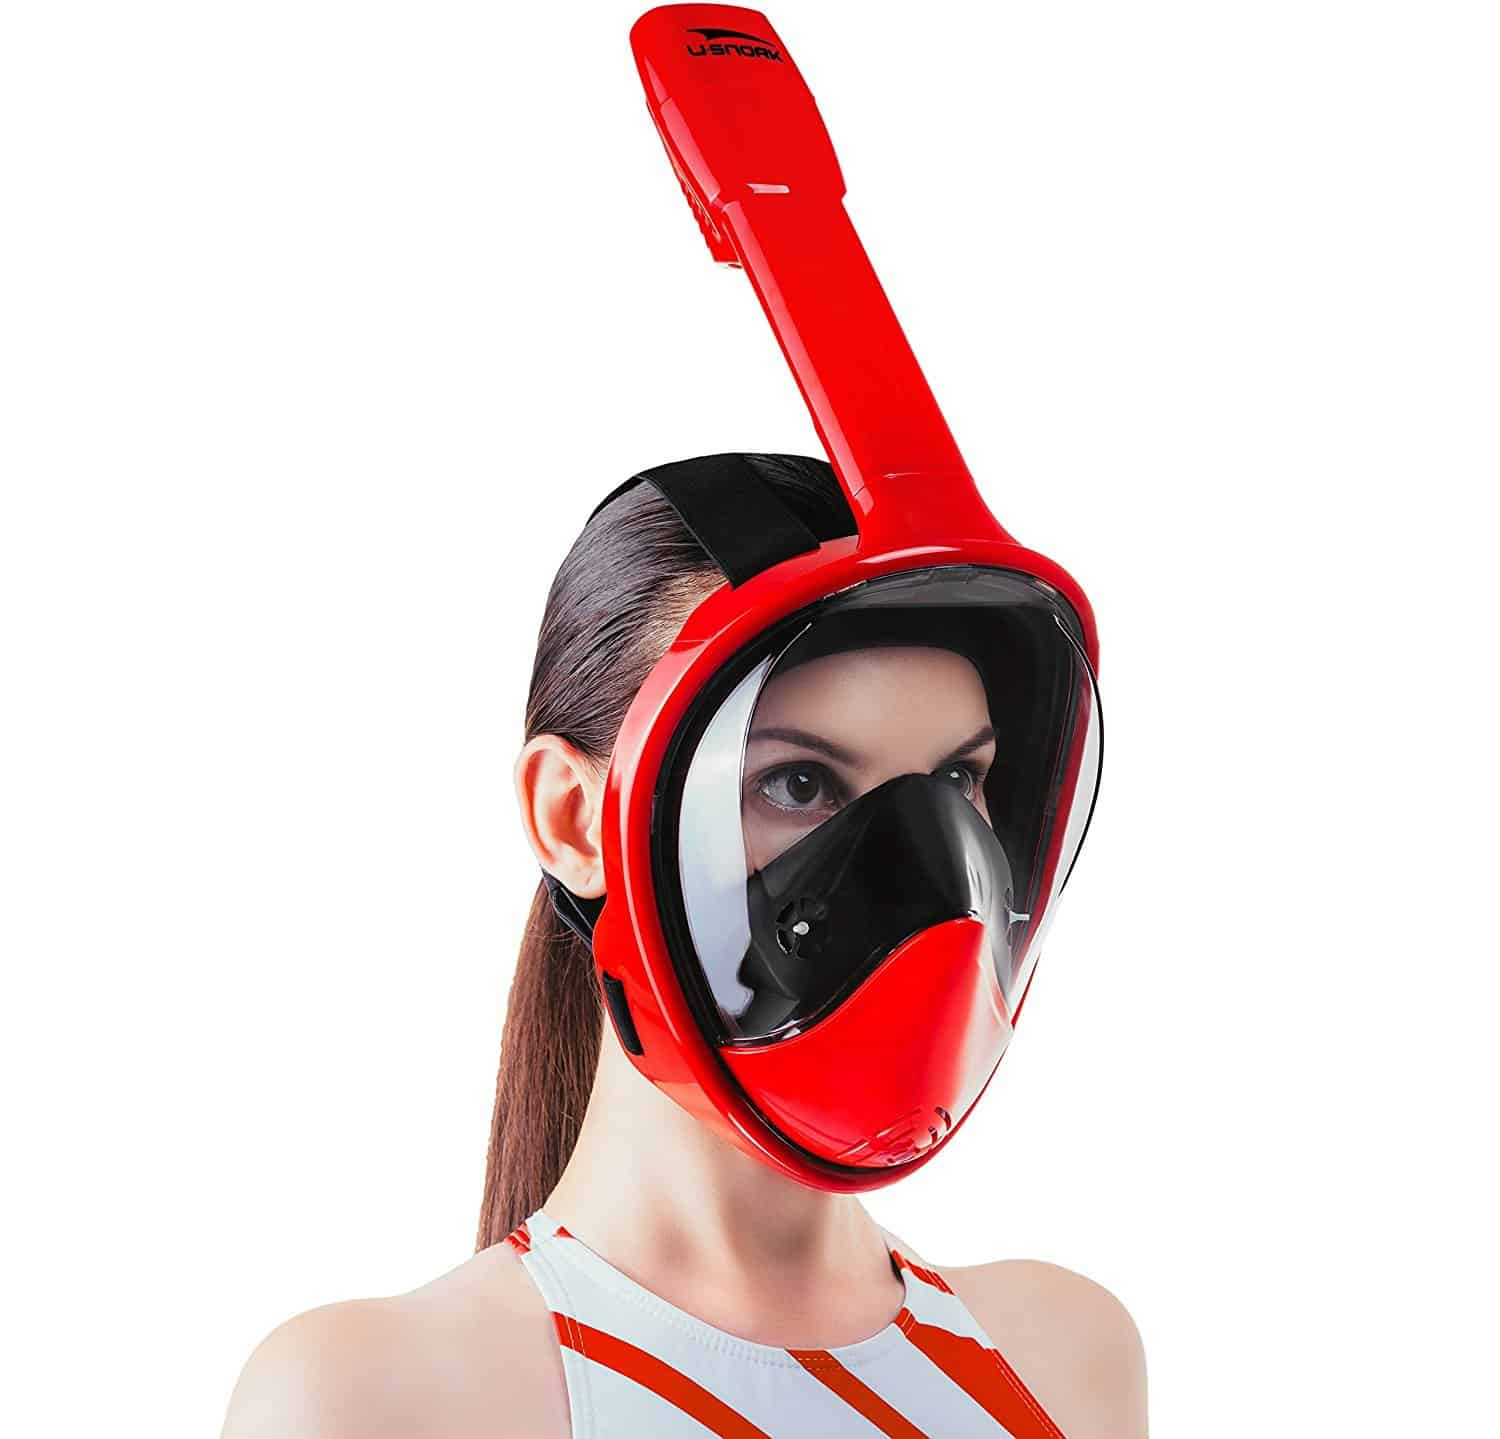 USnork full face snorkel mask Black-Red